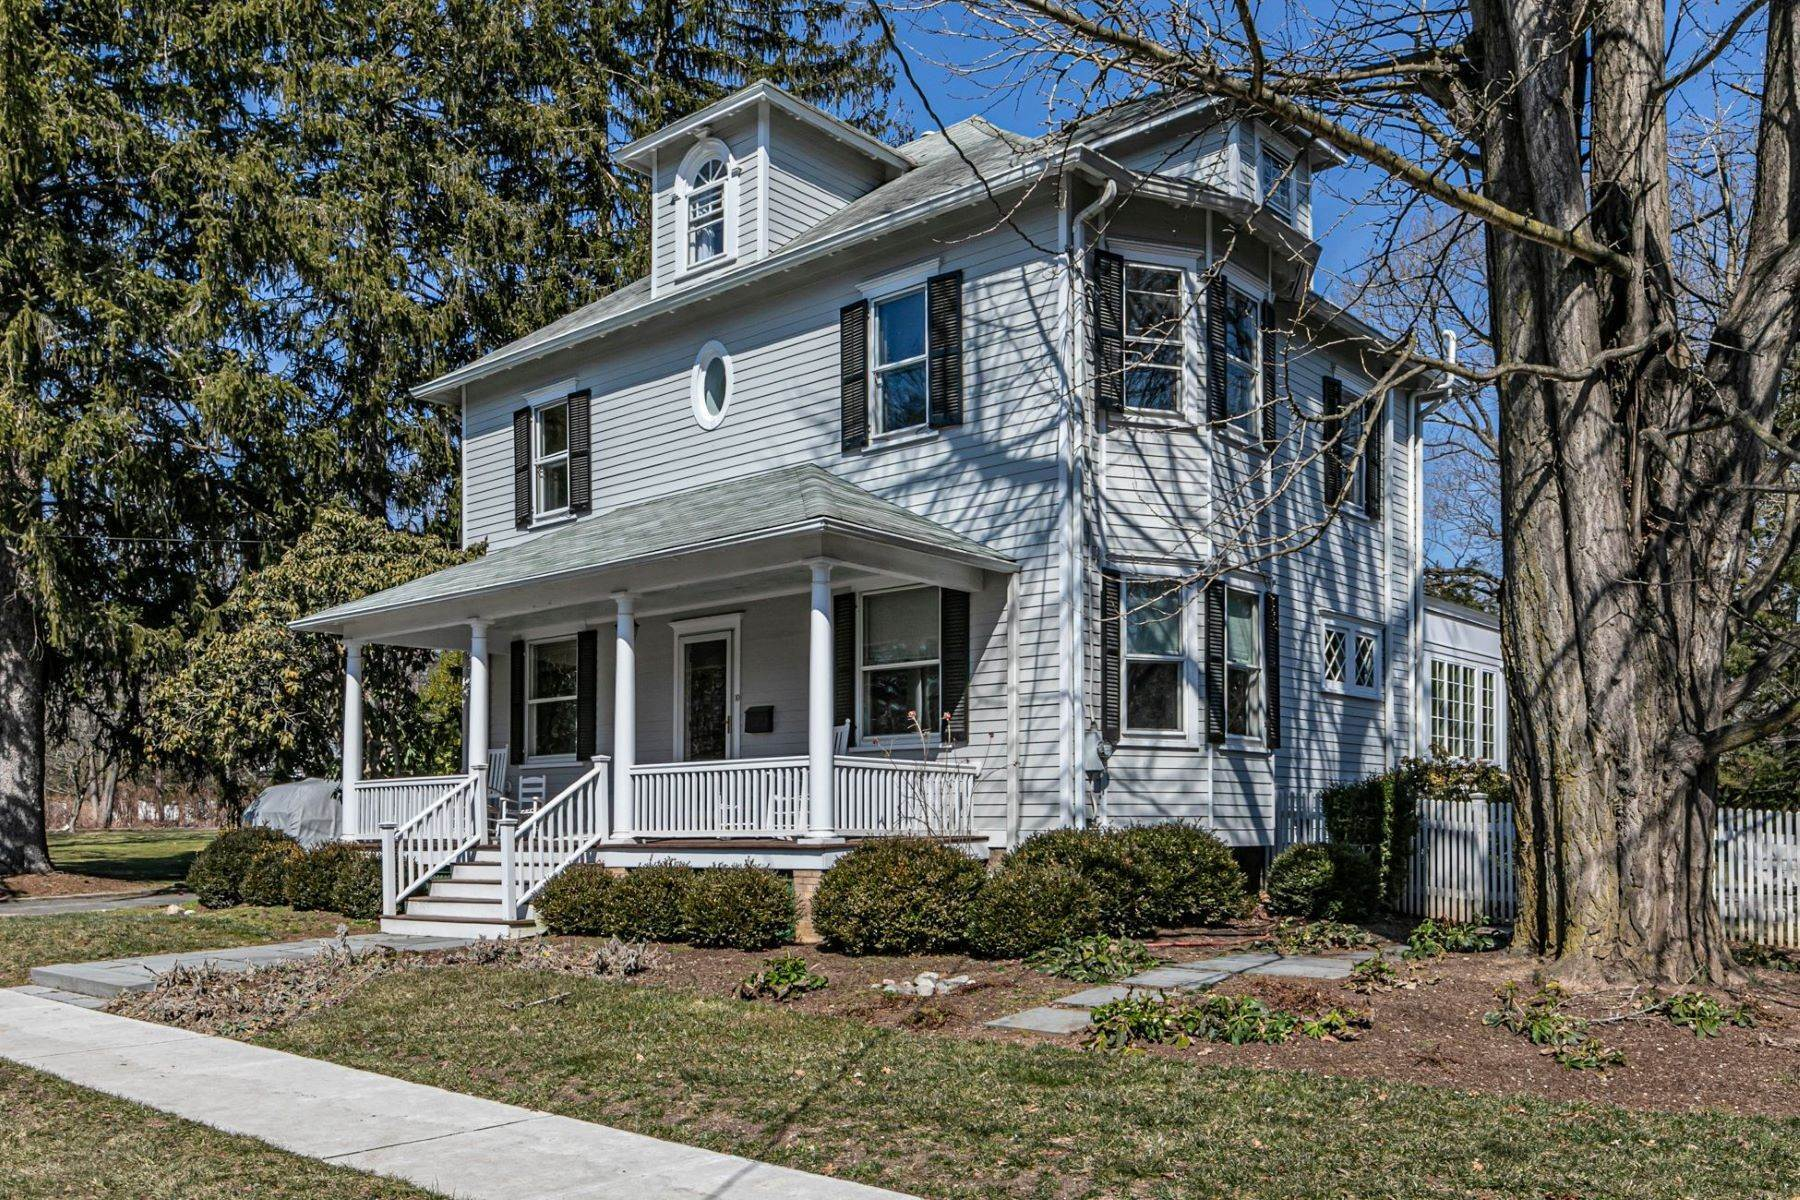 37. Single Family Homes for Sale at Picture Perfect Home Steps From Main Street 10 Green Avenue, Lawrenceville, New Jersey 08648 United States